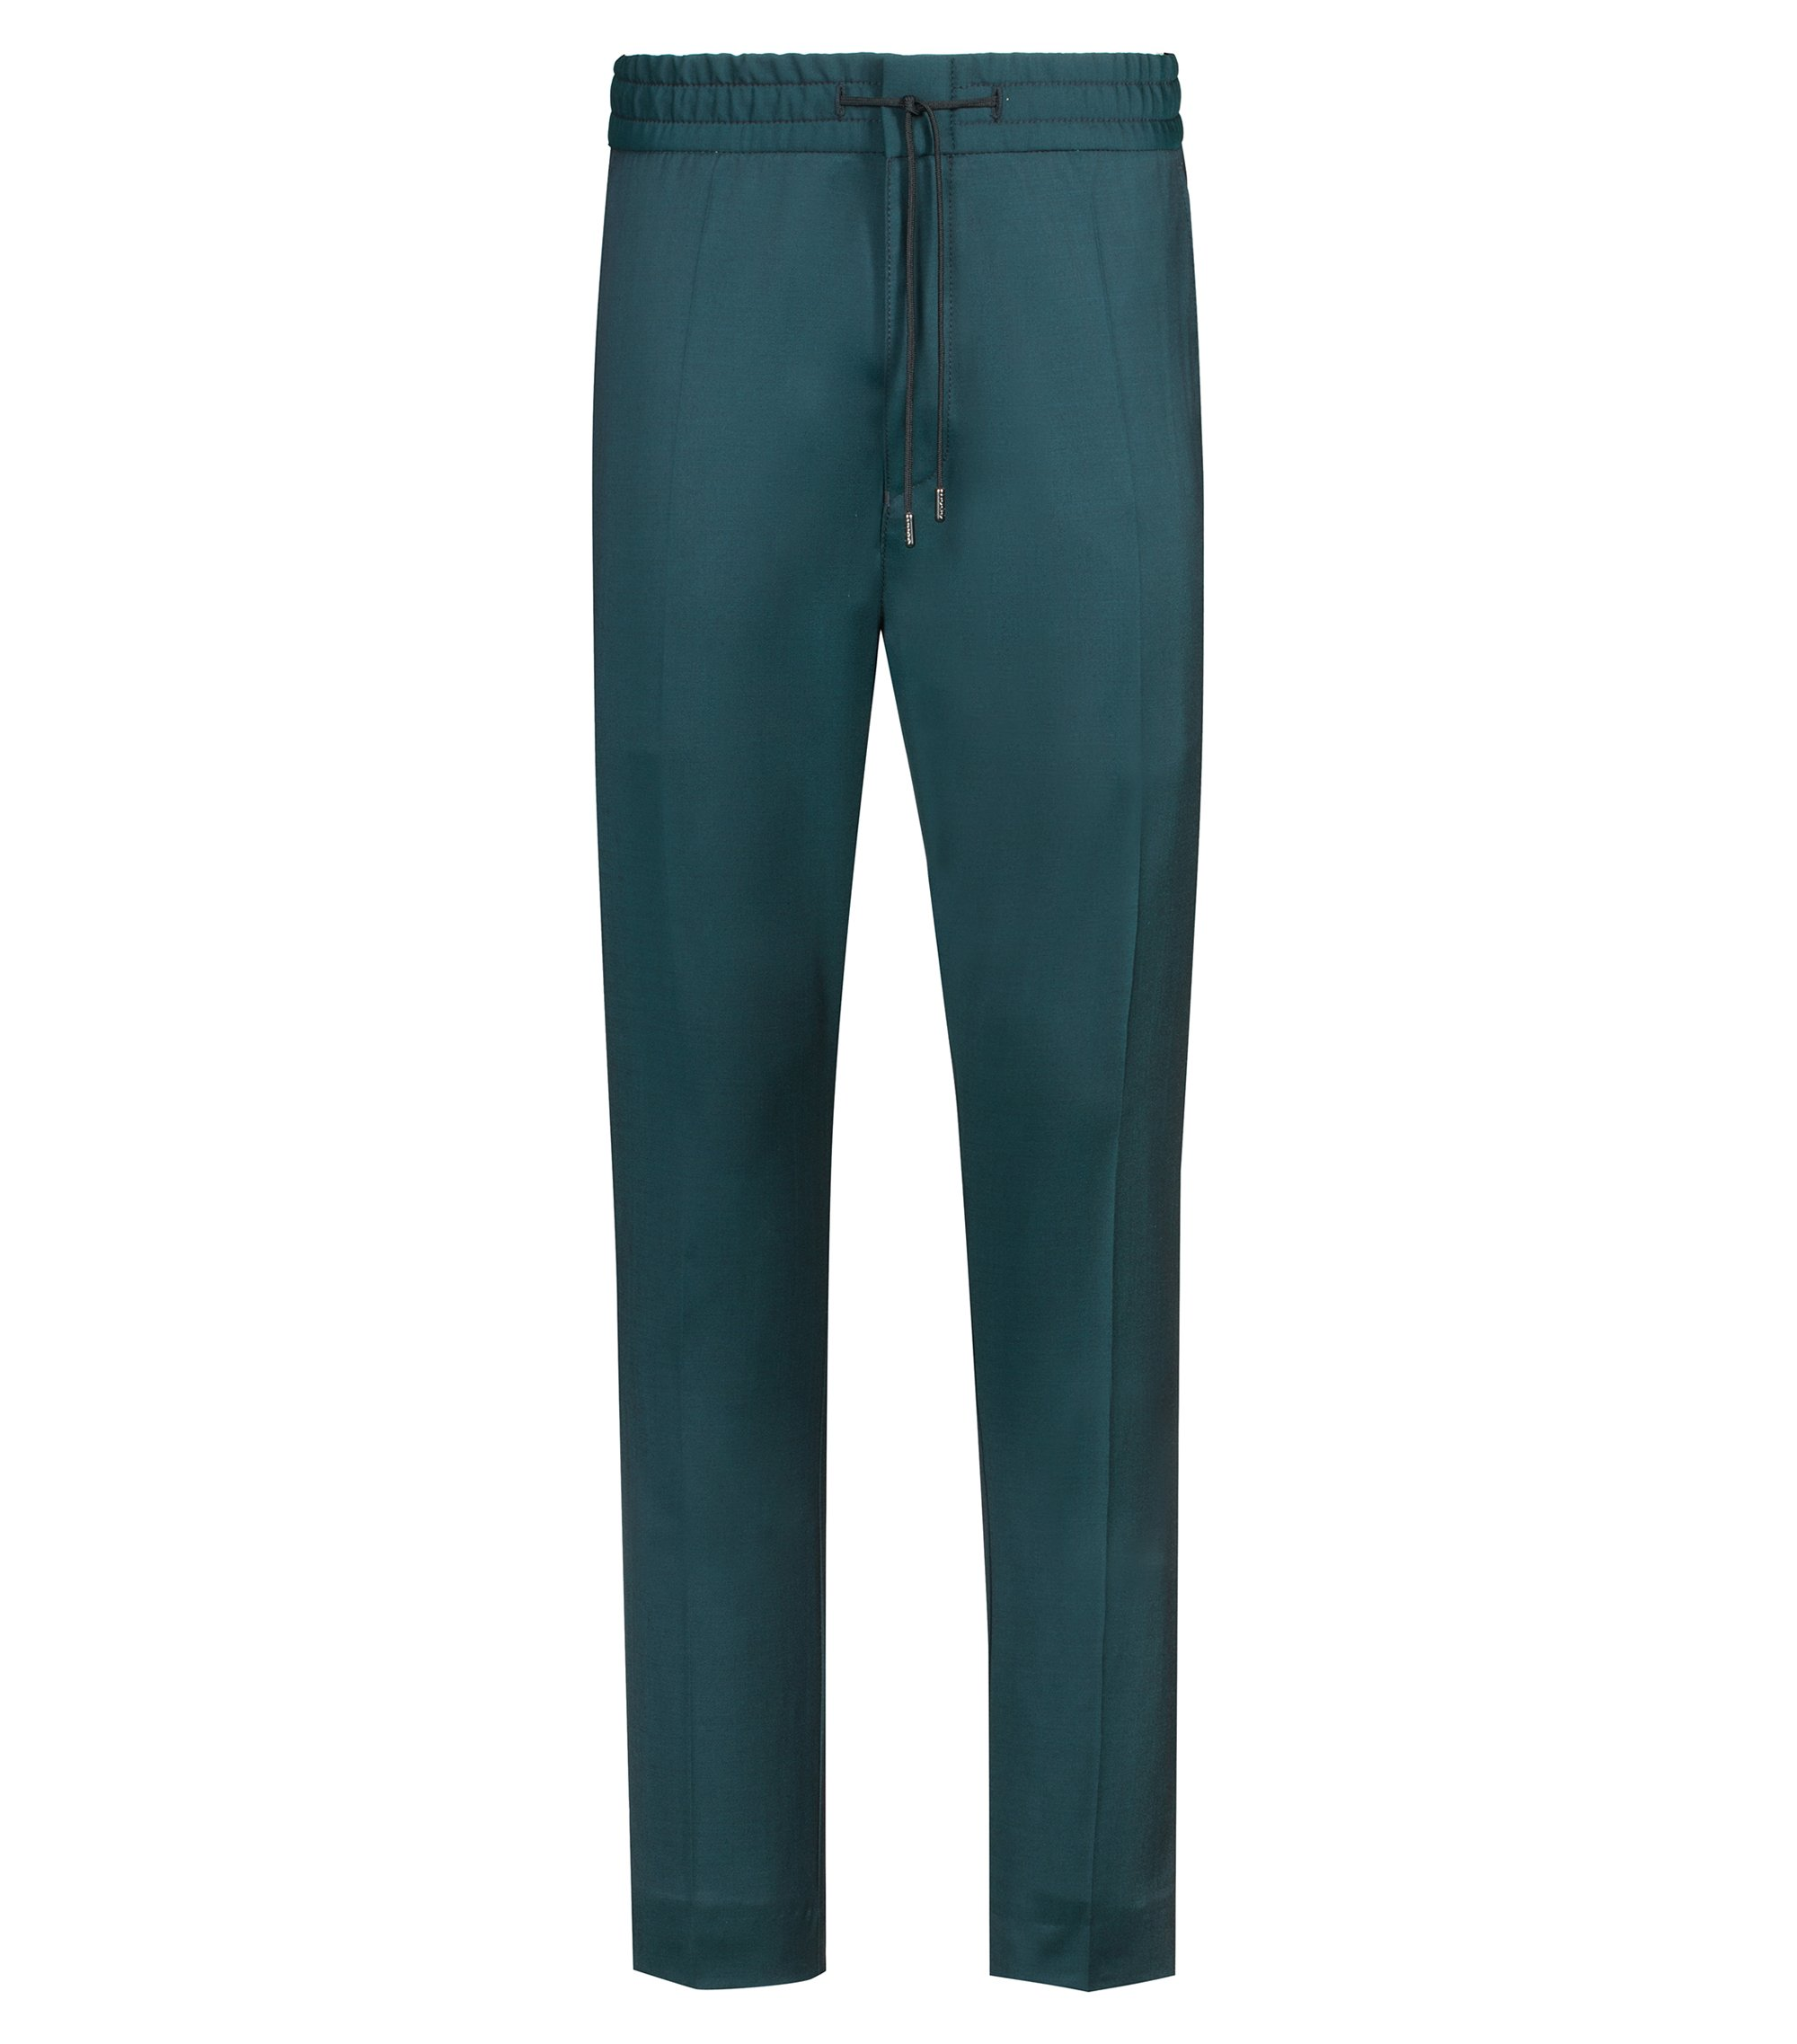 Pantalon Tapered Fit en laine vierge naturellement stretch, Vert sombre